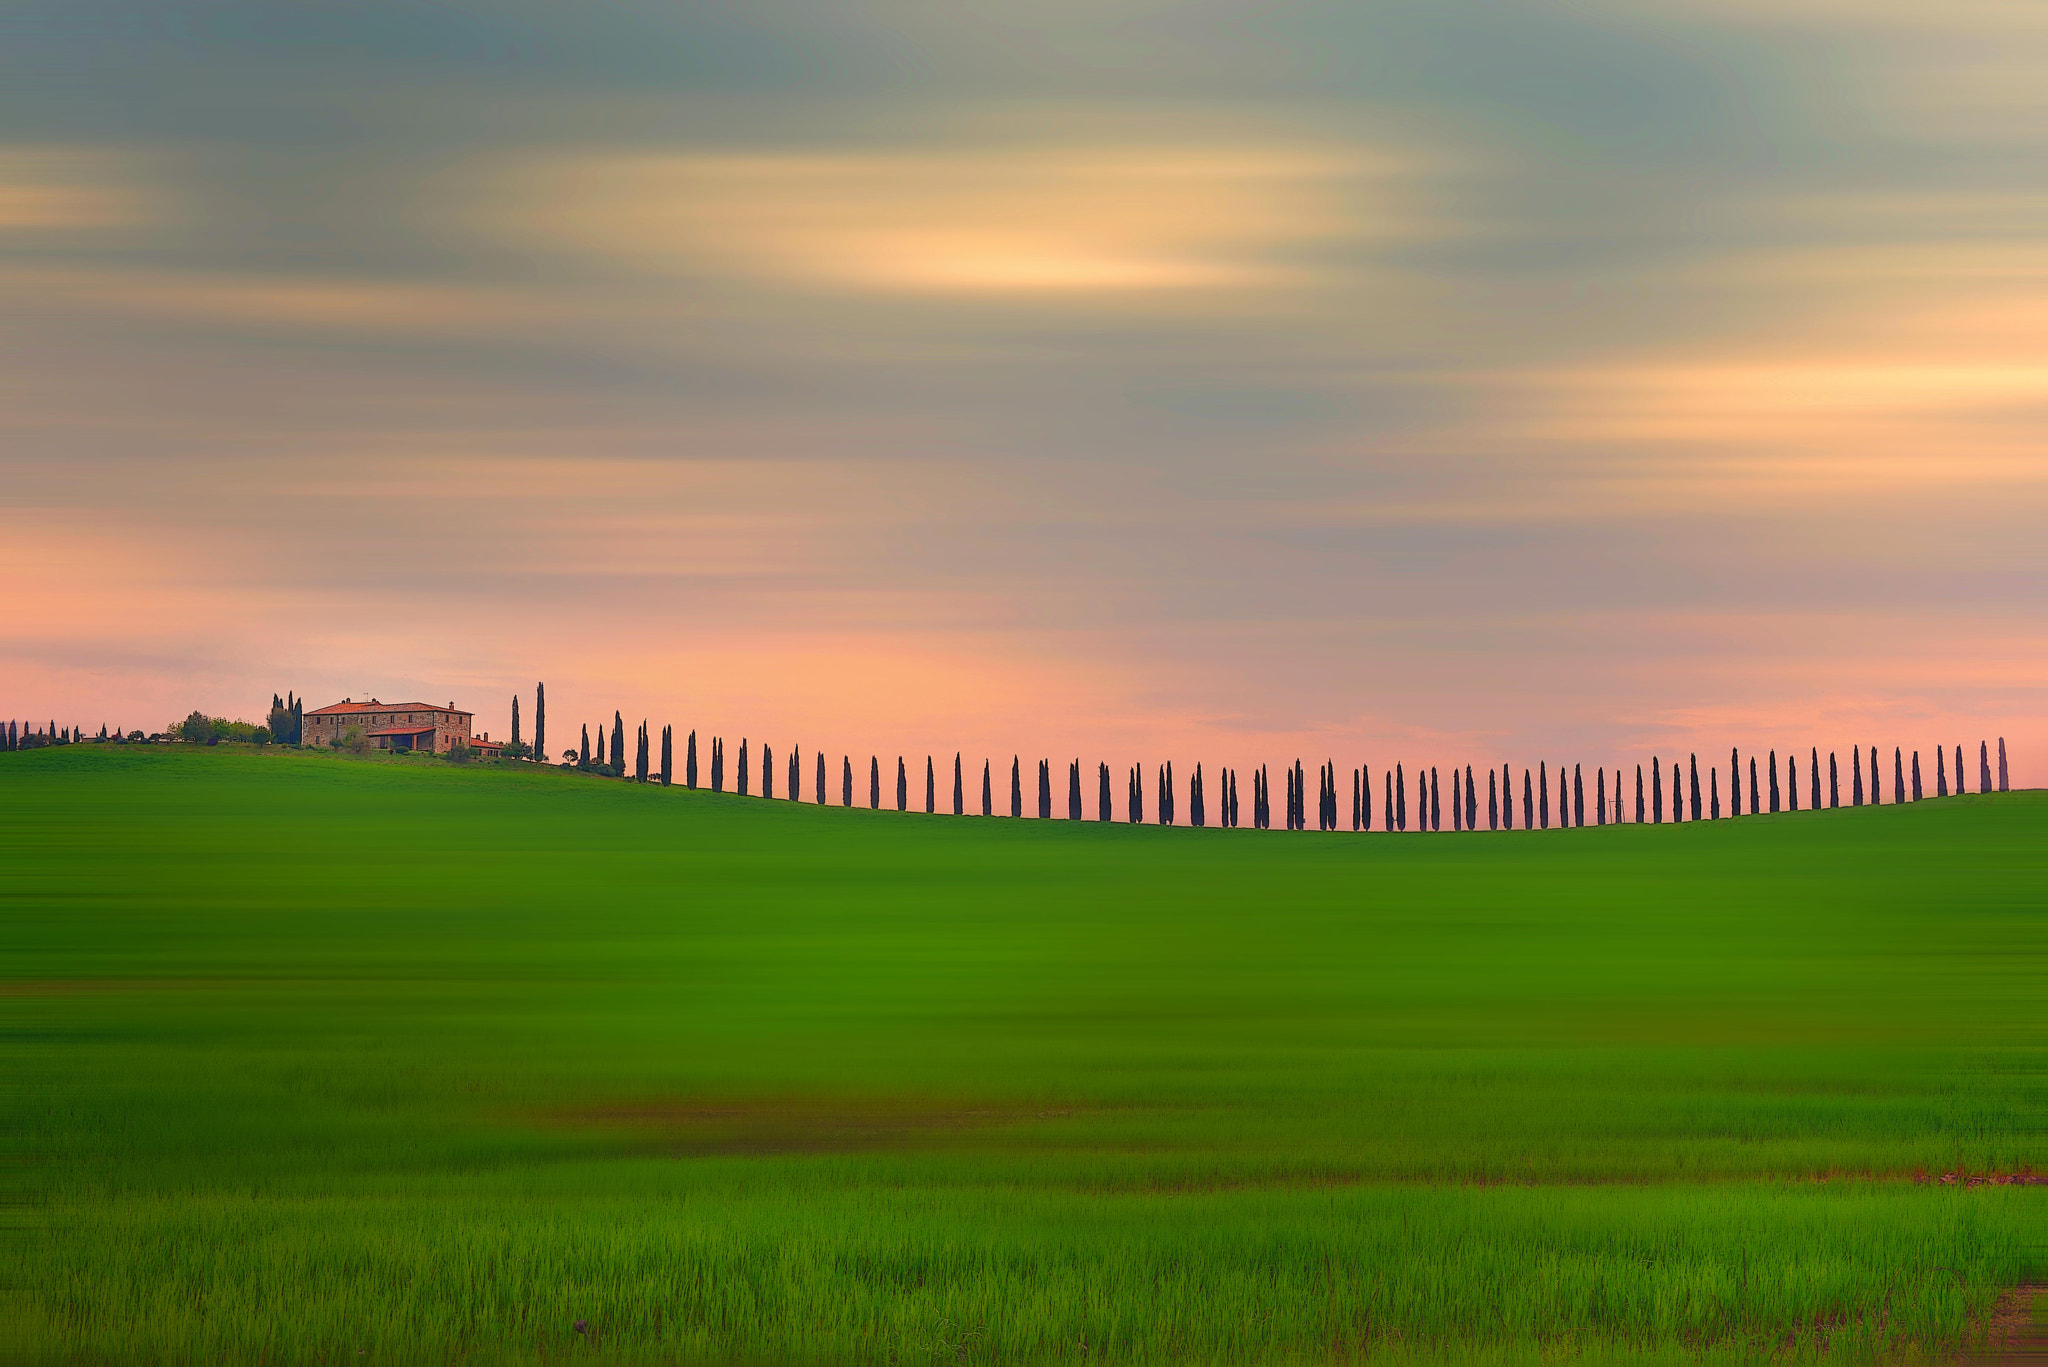 Photograph Tuscan skyline by mauro maione on 500px